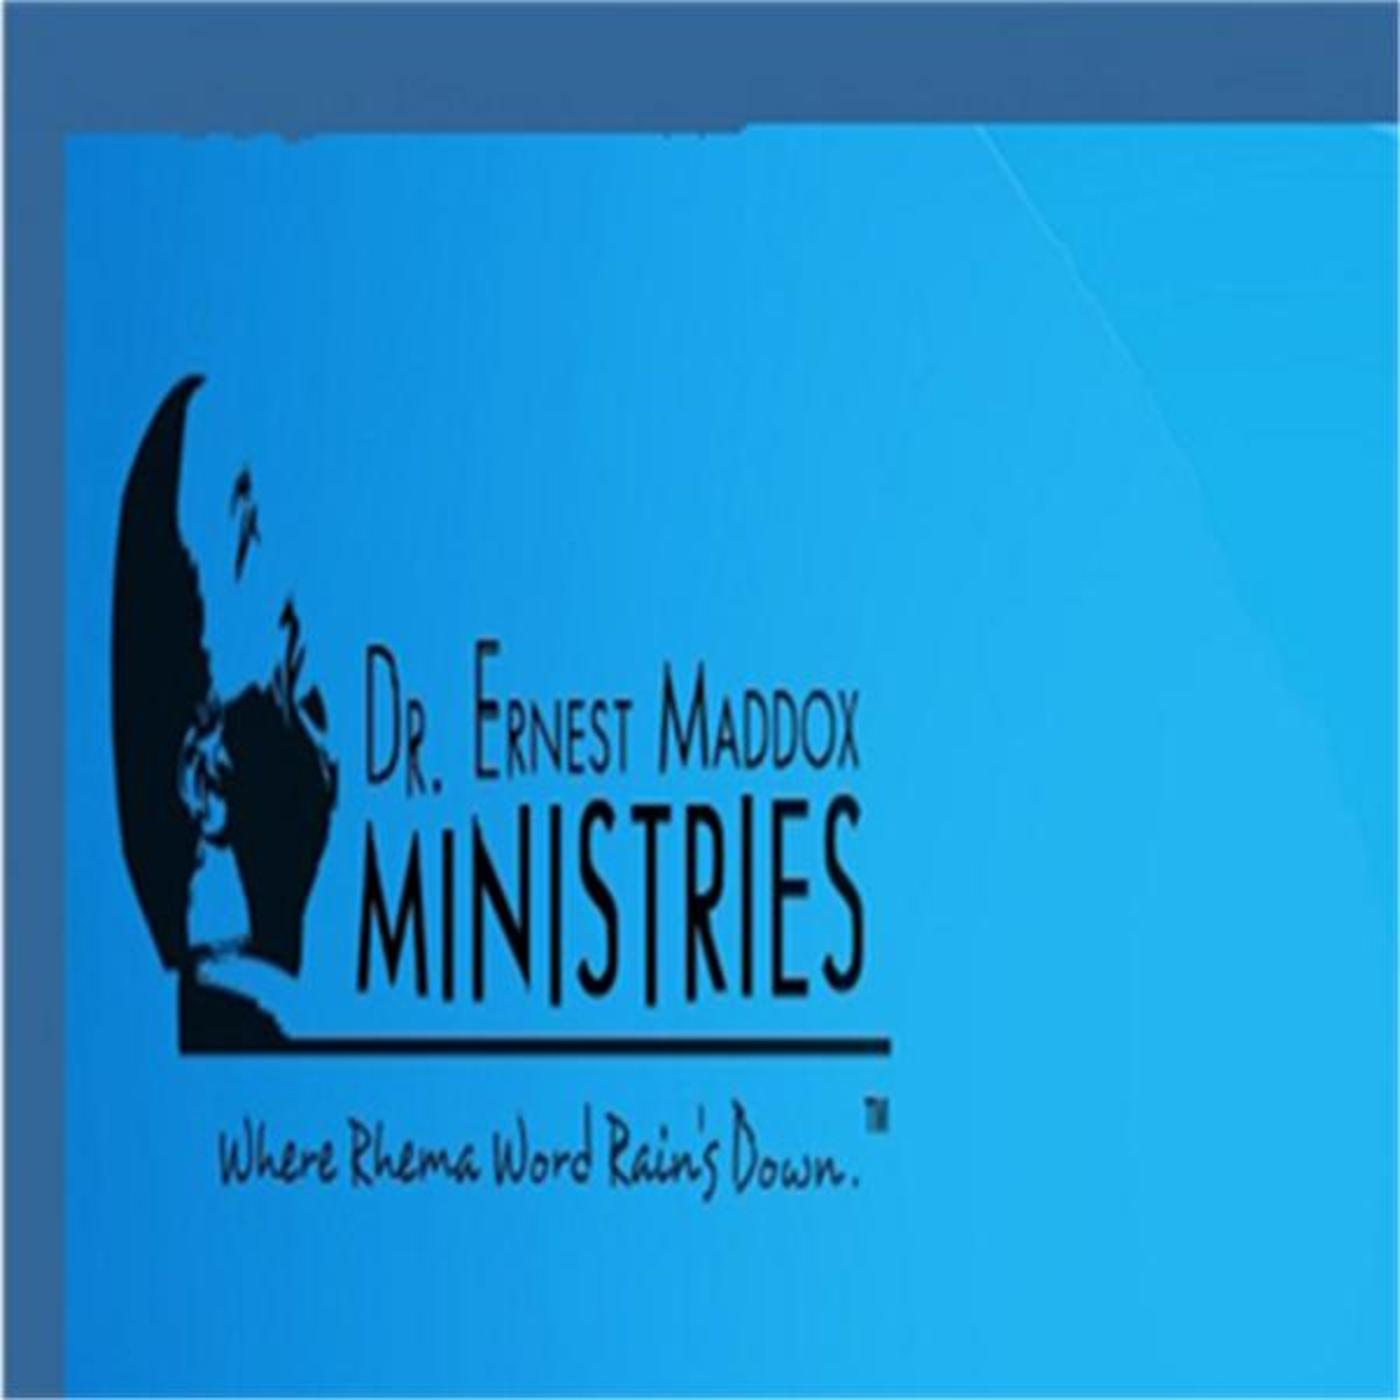 Dr. Ernest Maddox Ministries Network